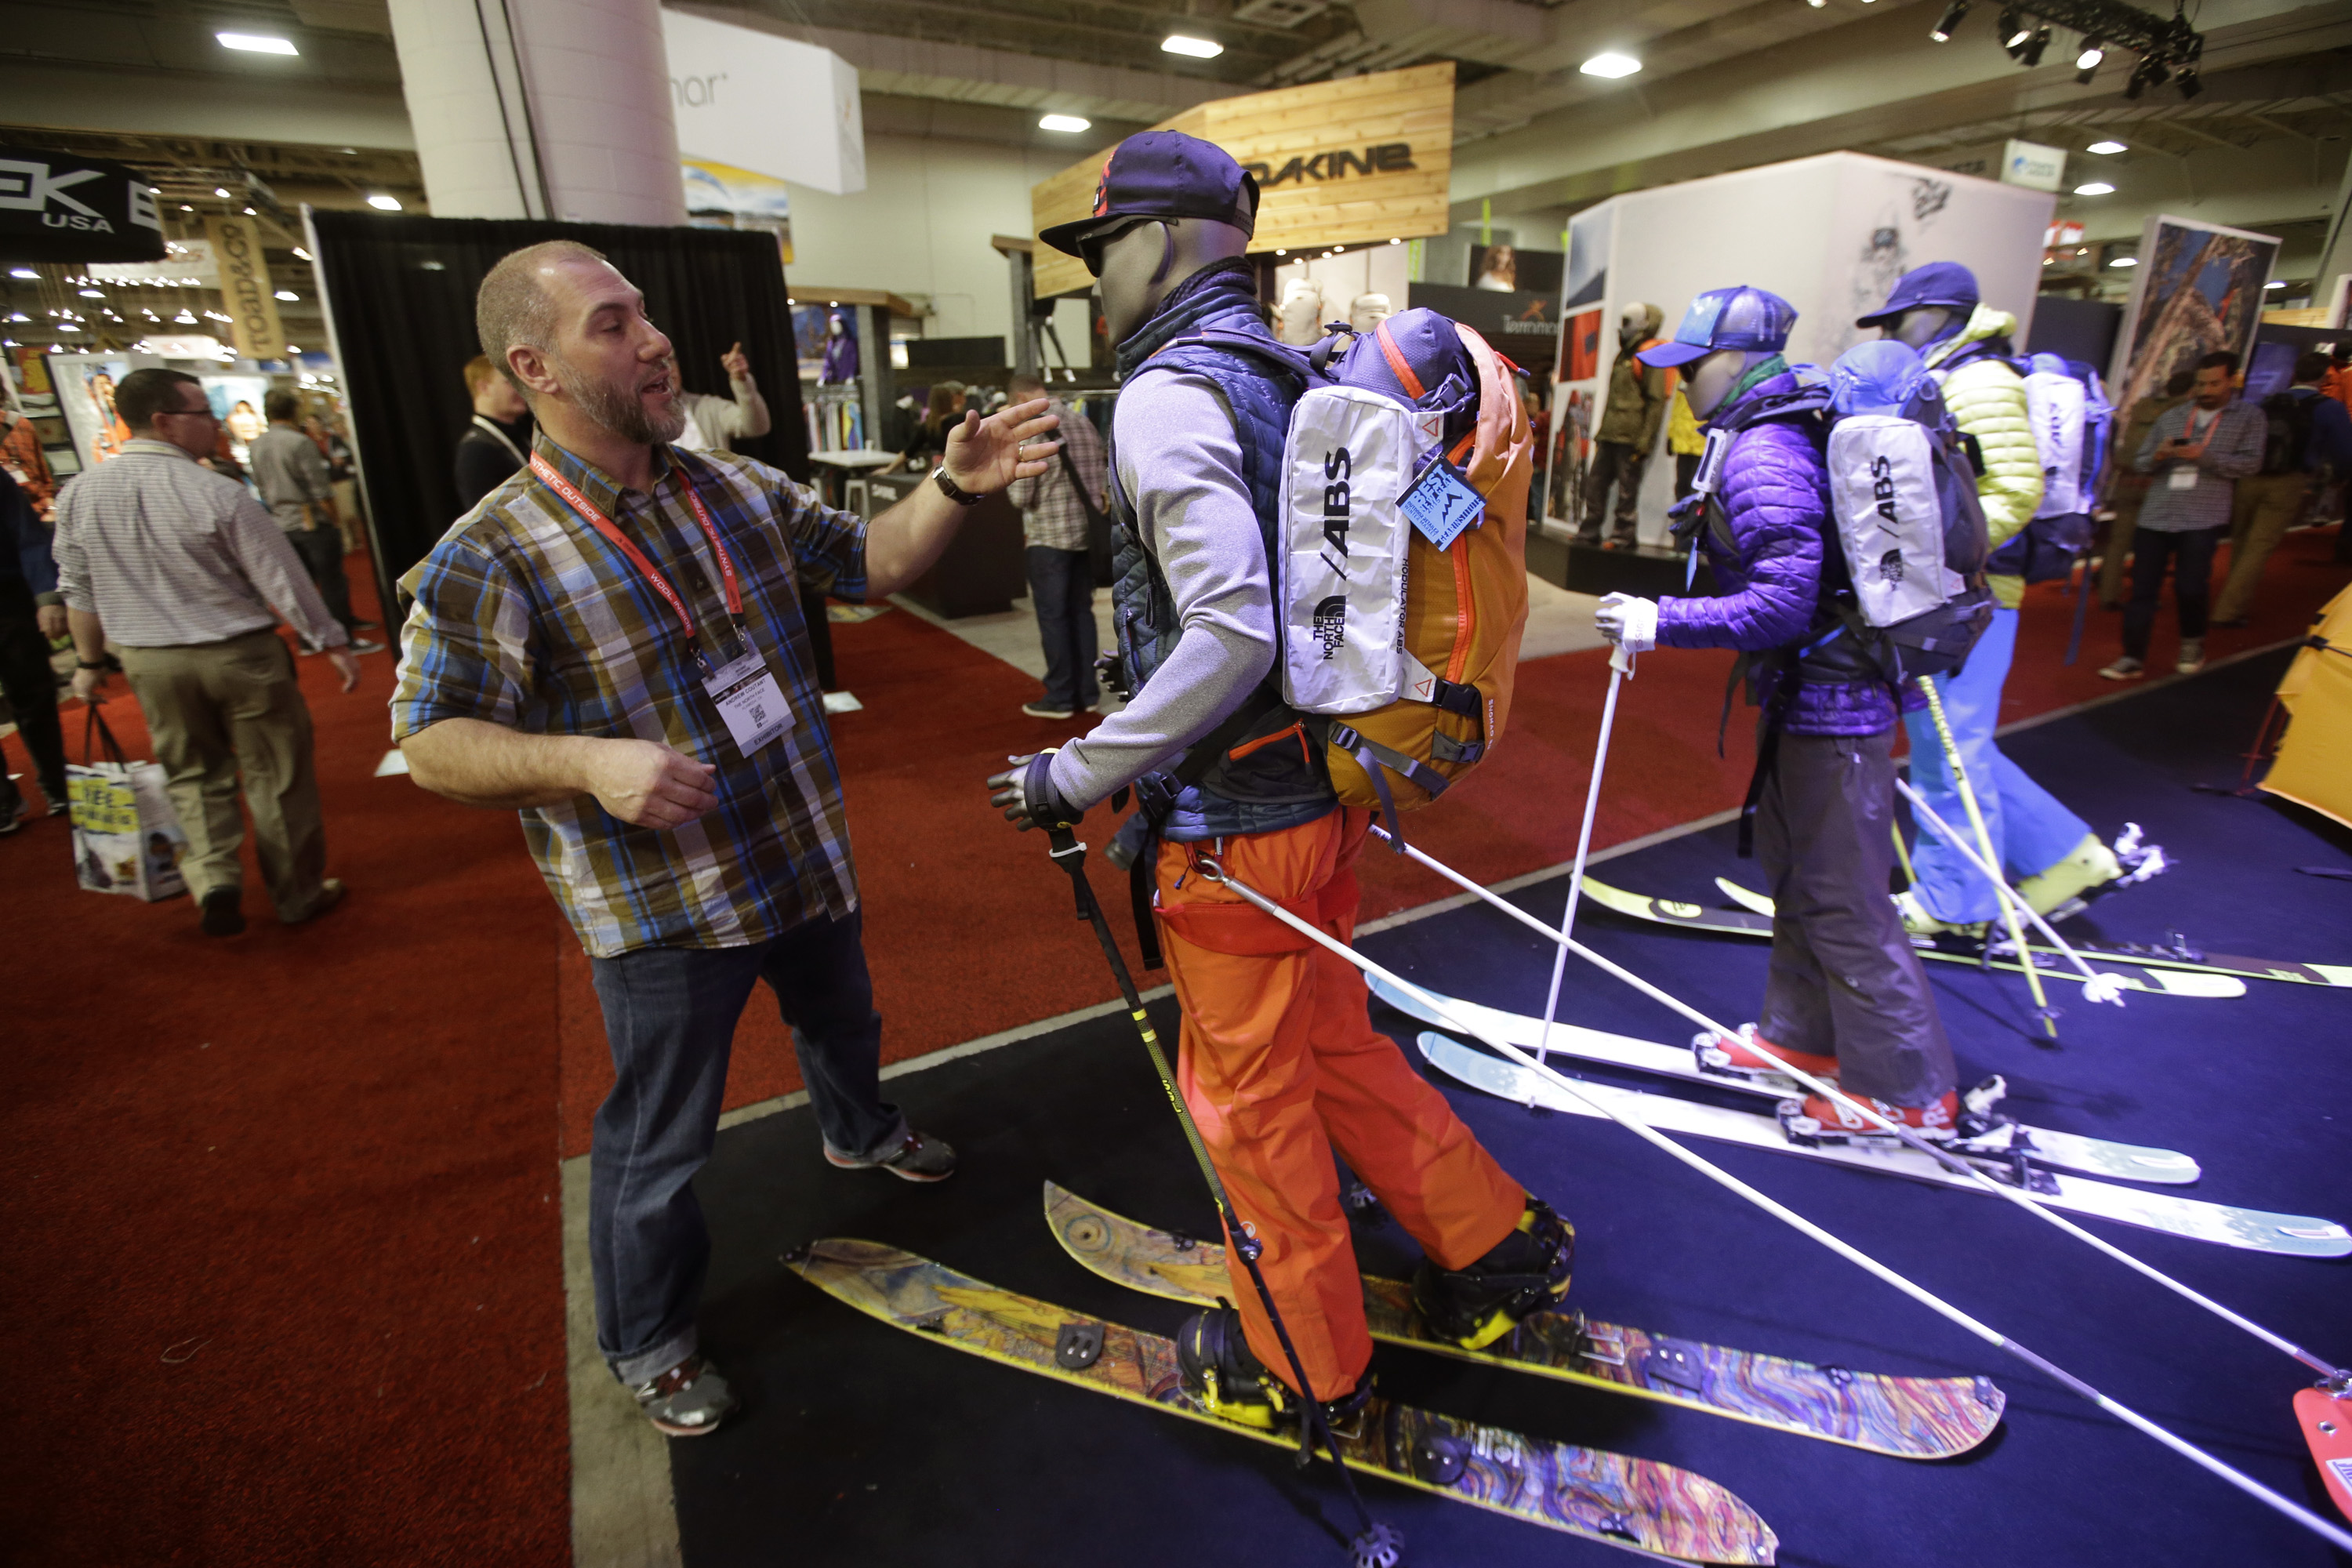 Technology improves avalanche gear for backcountry skiers